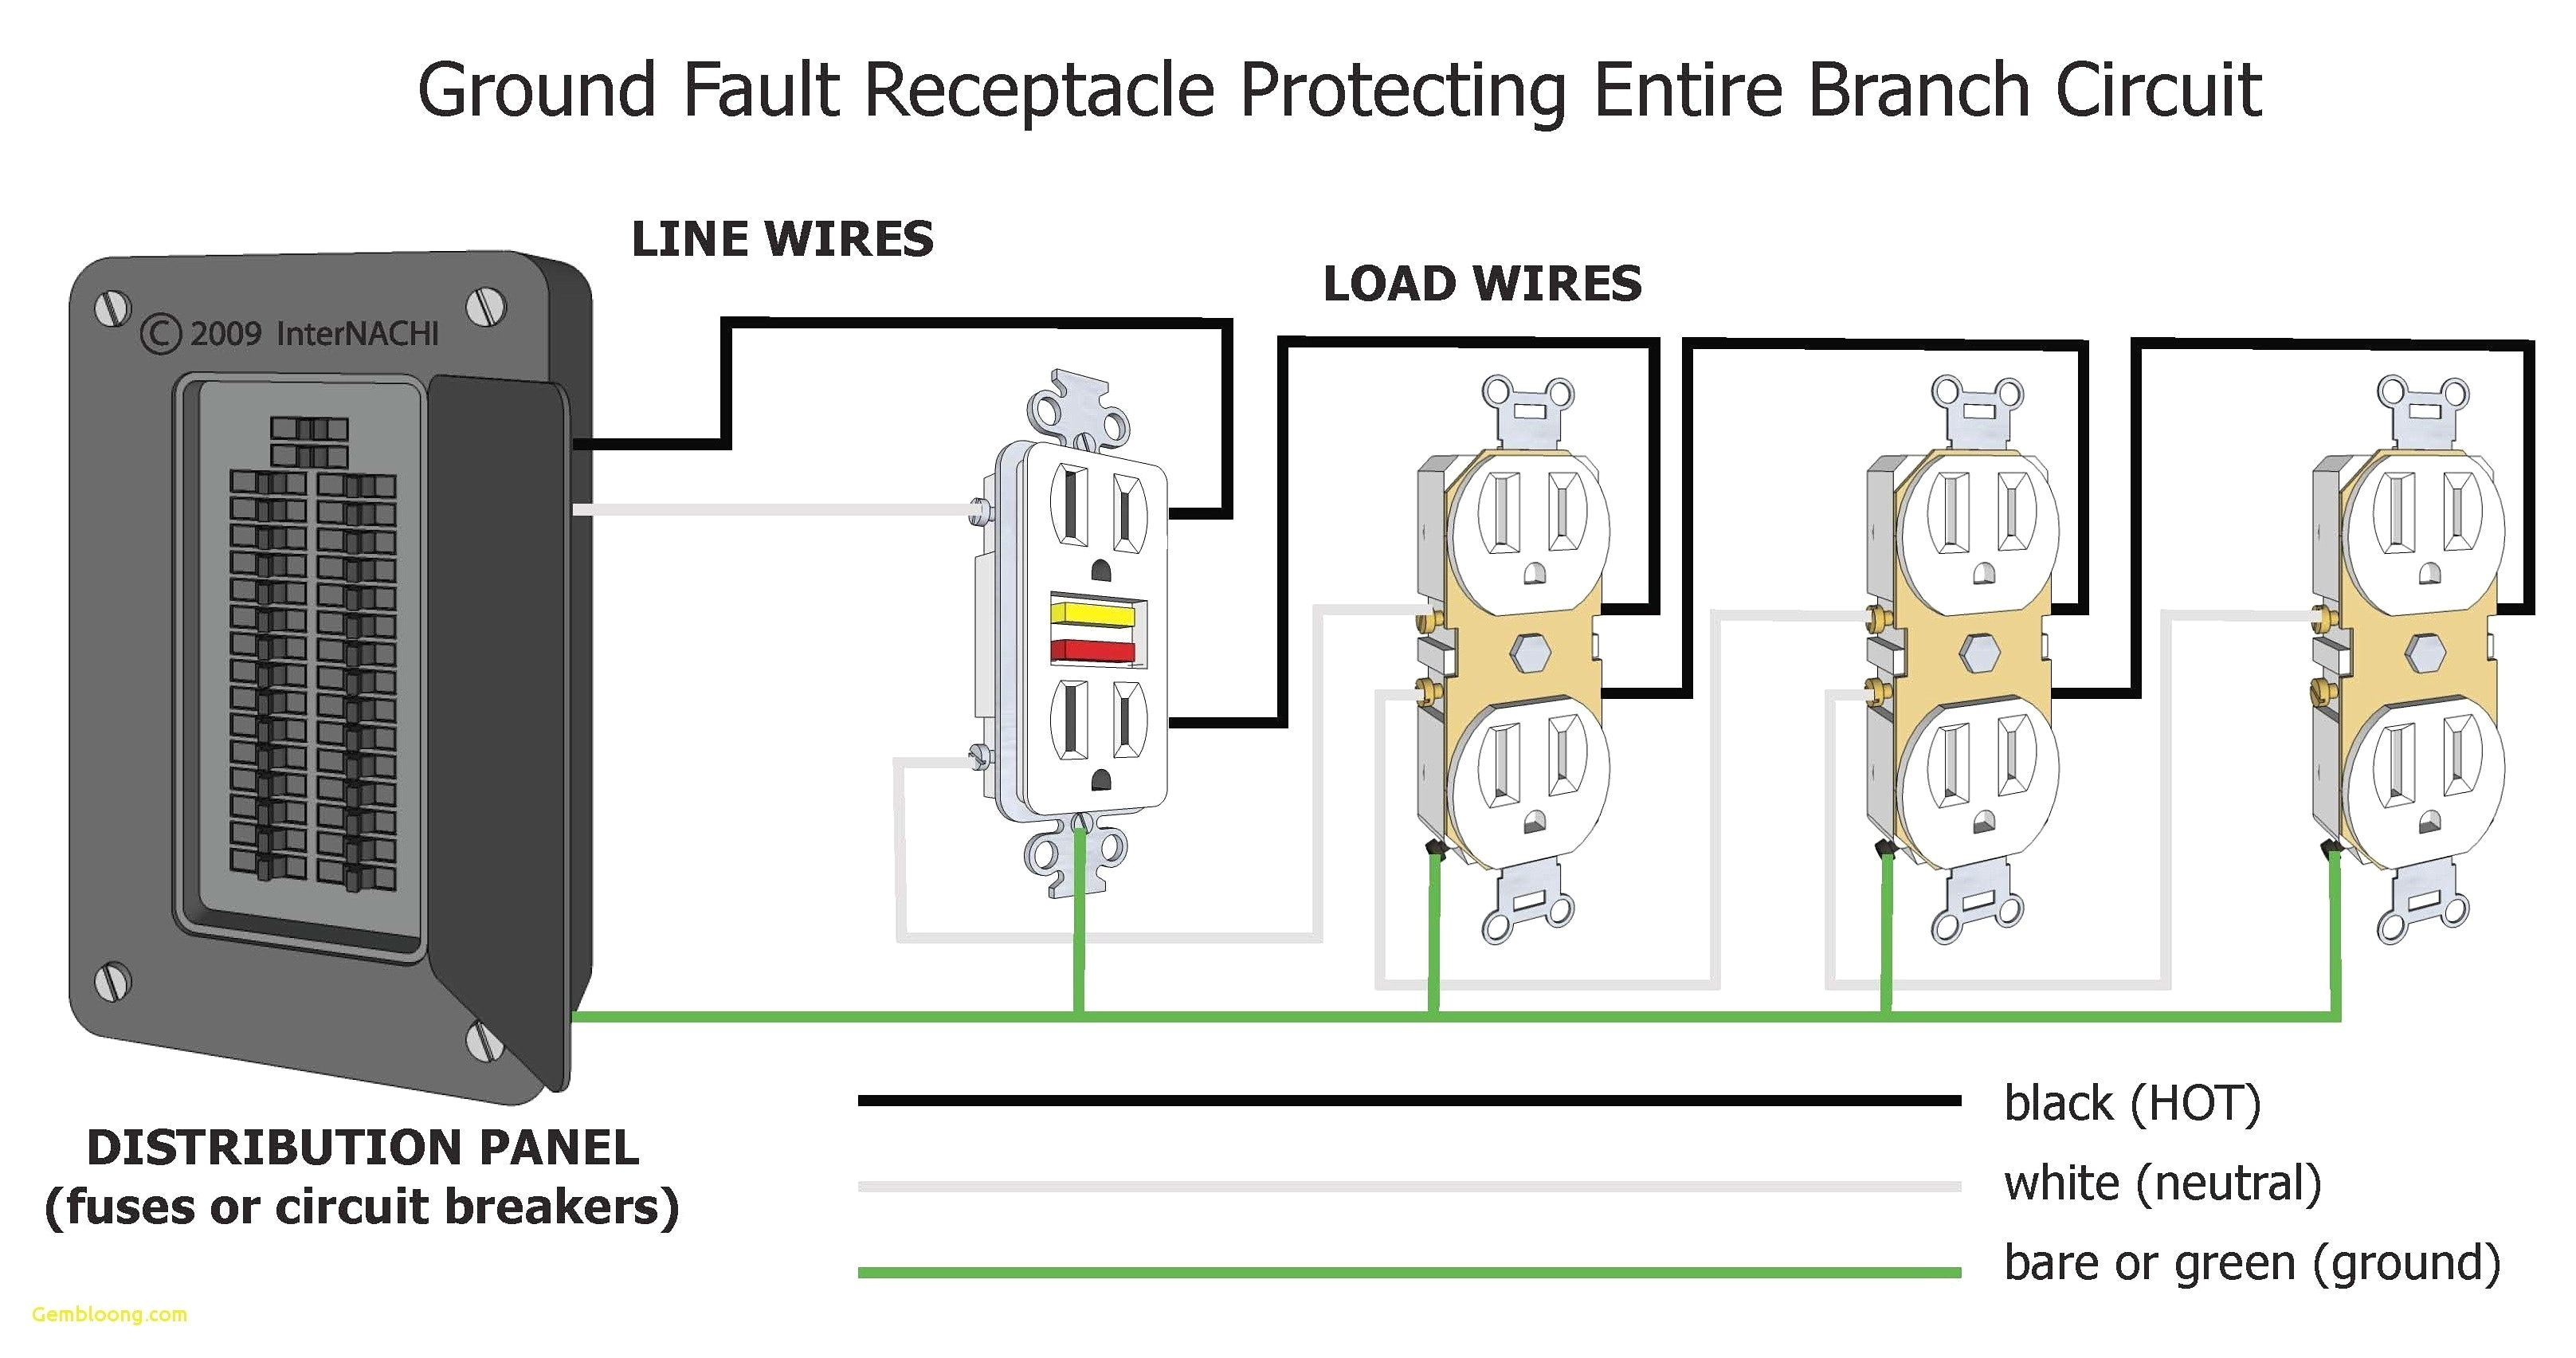 wiring diagram switched outlet fresh wiring diagram switch to outlet new wiring diagram switch outlet